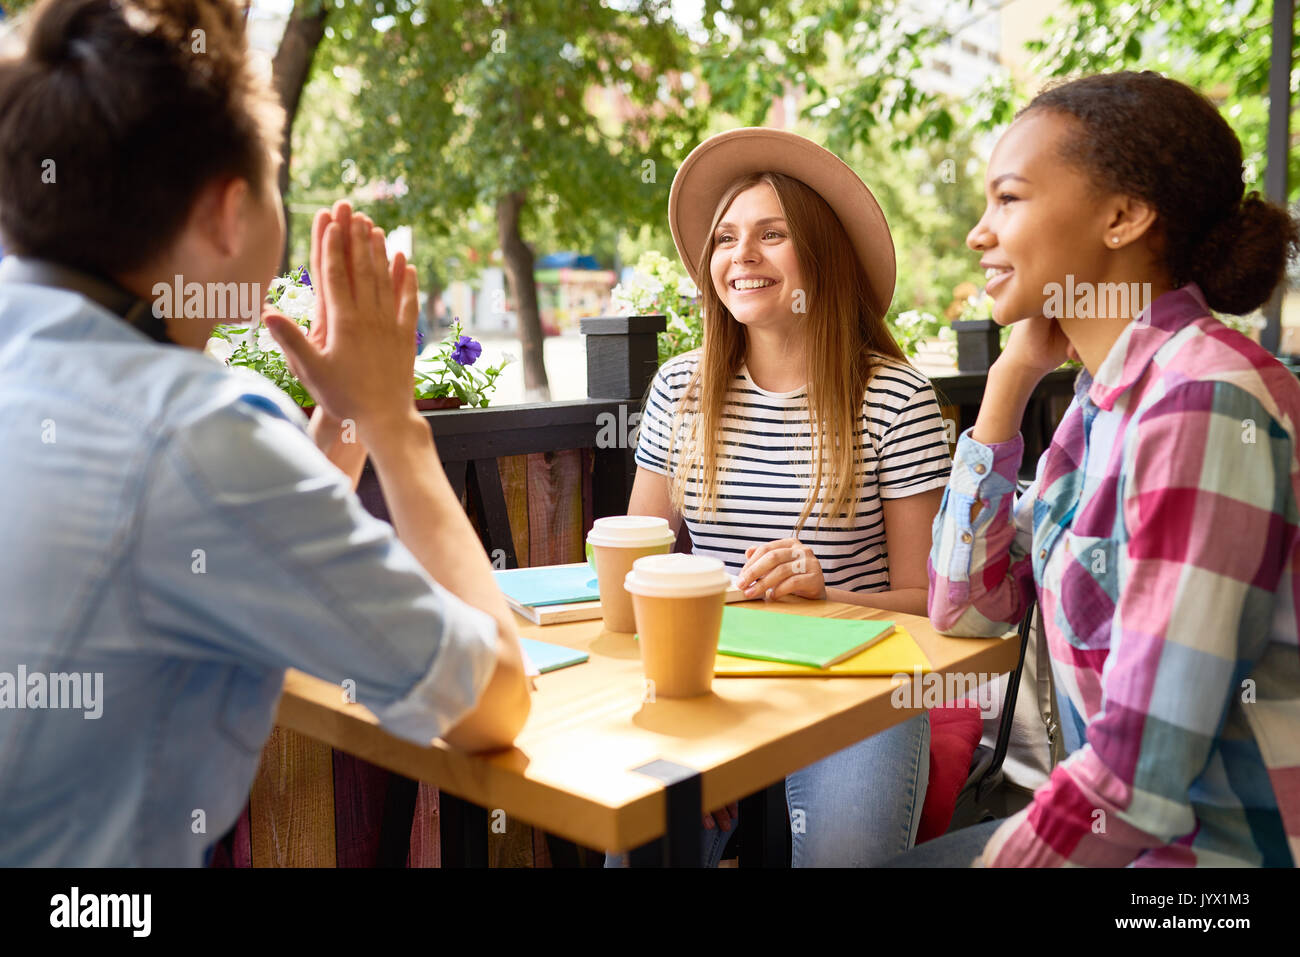 Groupe de jeunes qui étudient au Cafe Photo Stock